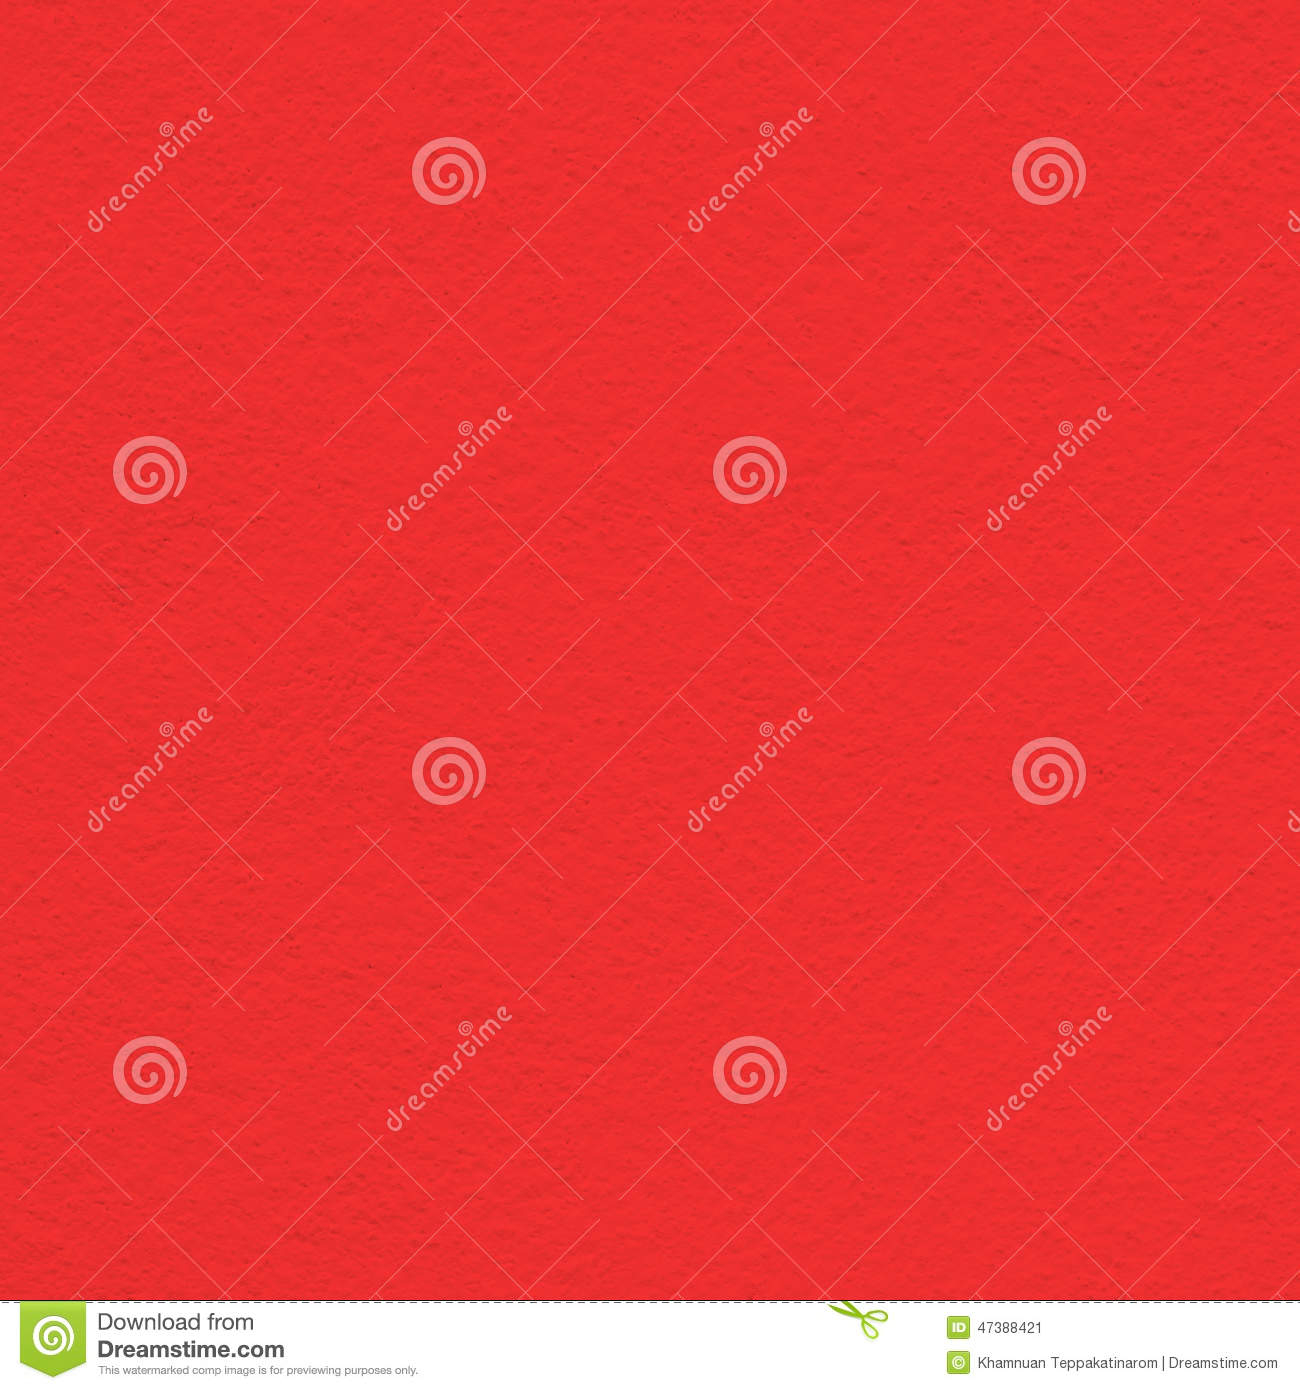 Red Wall Paint red wall paint texture stock illustration - image: 47388421